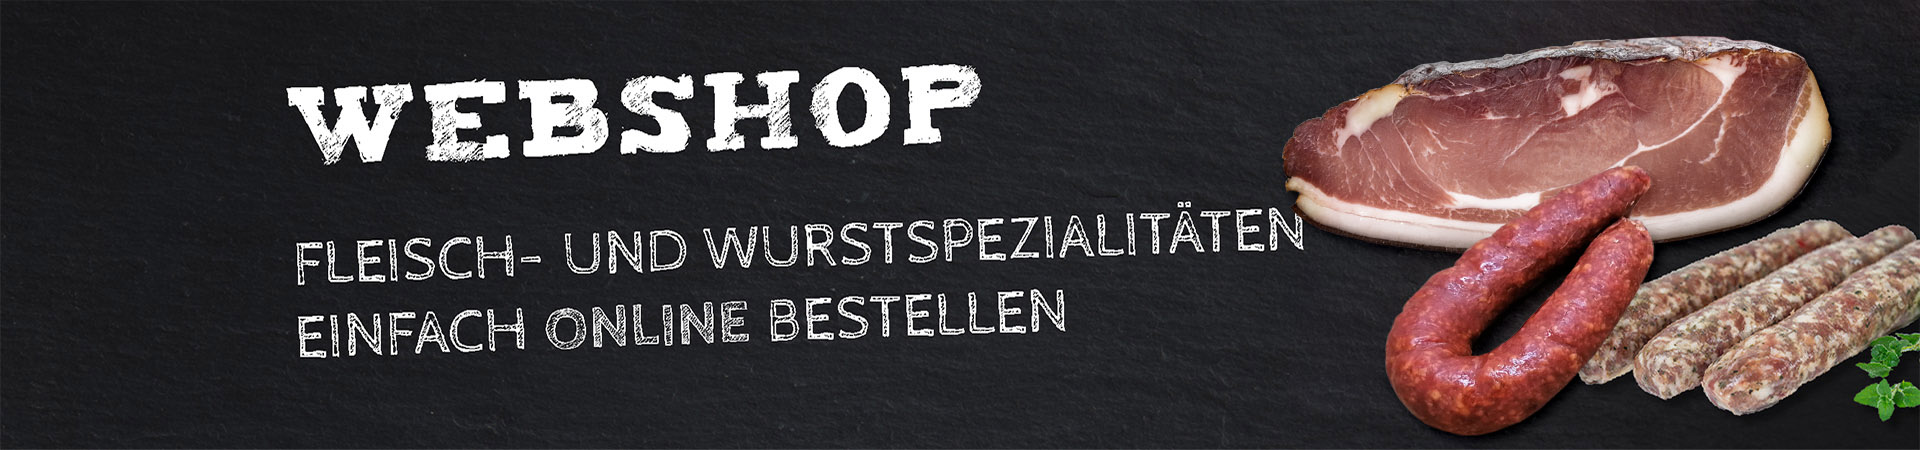 https://metzgerei-woerlein.de/wp-content/uploads/2020/11/Webshop-Header-neu.jpg